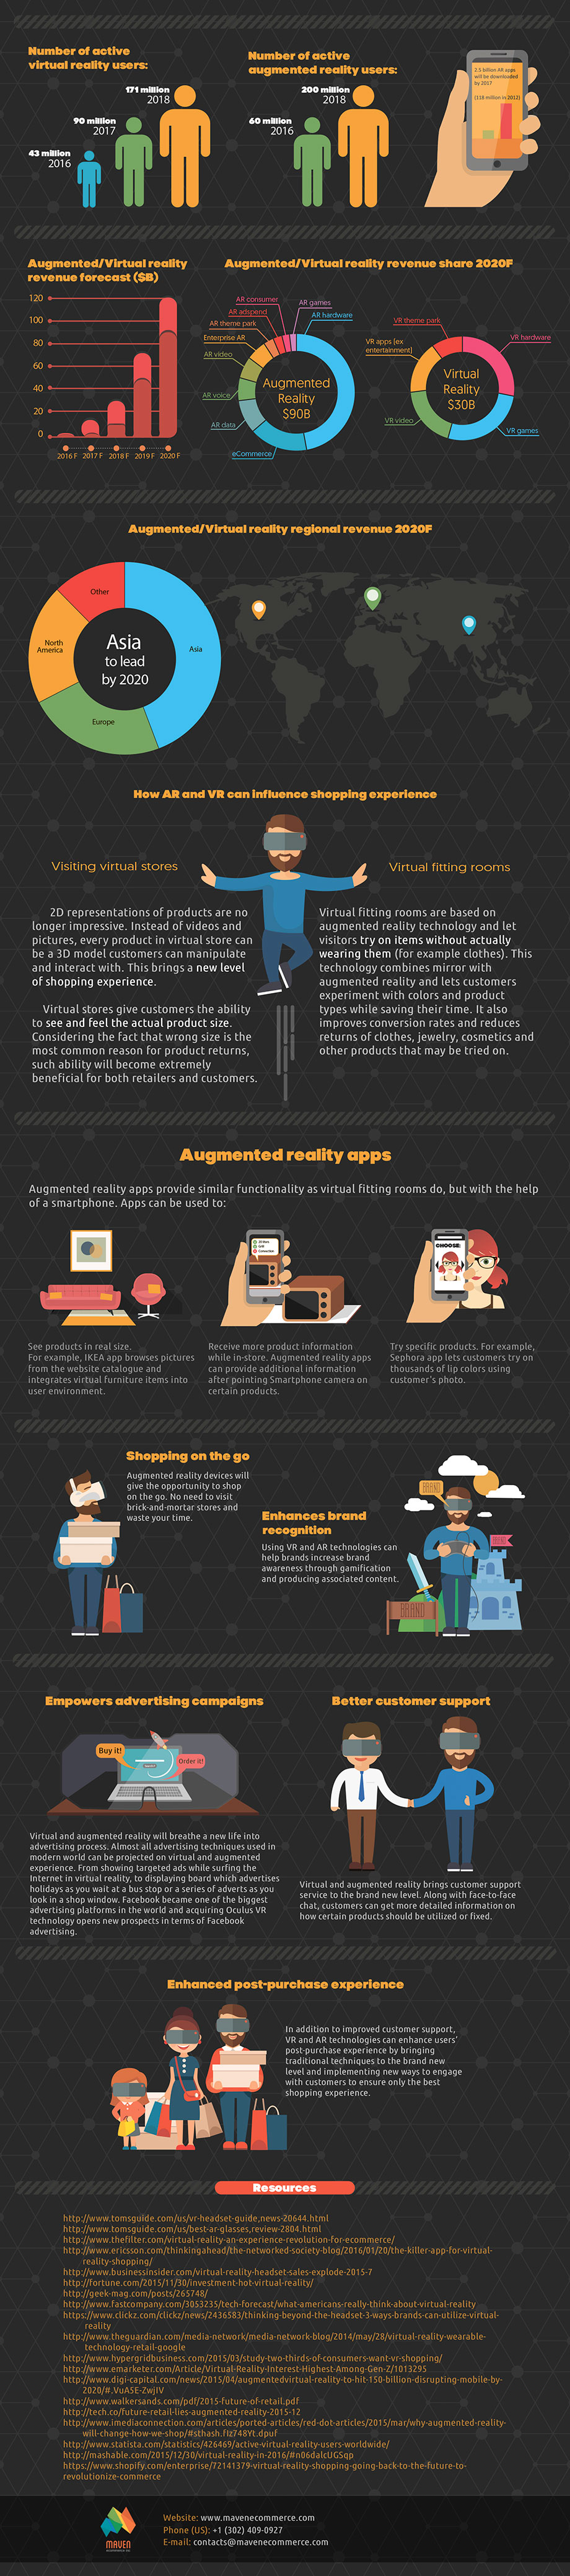 augmented-virtual-reality-shop-infographic-2